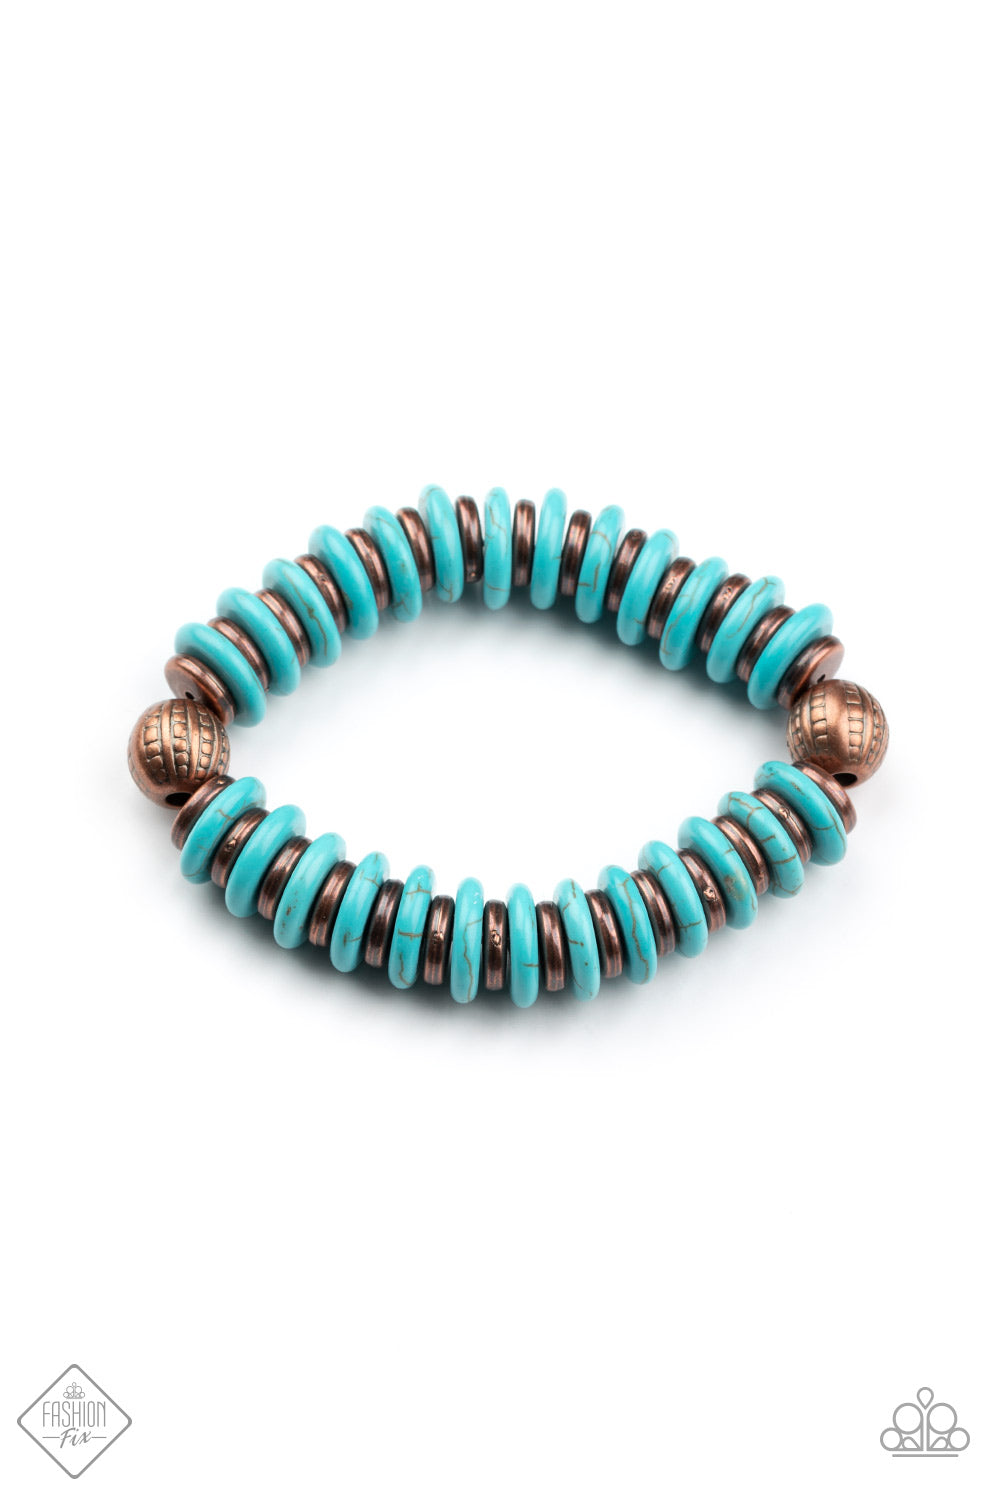 Paparazzi Bracelet ~ Eco Experience - Fashion Fix Nov 2020 - Copper